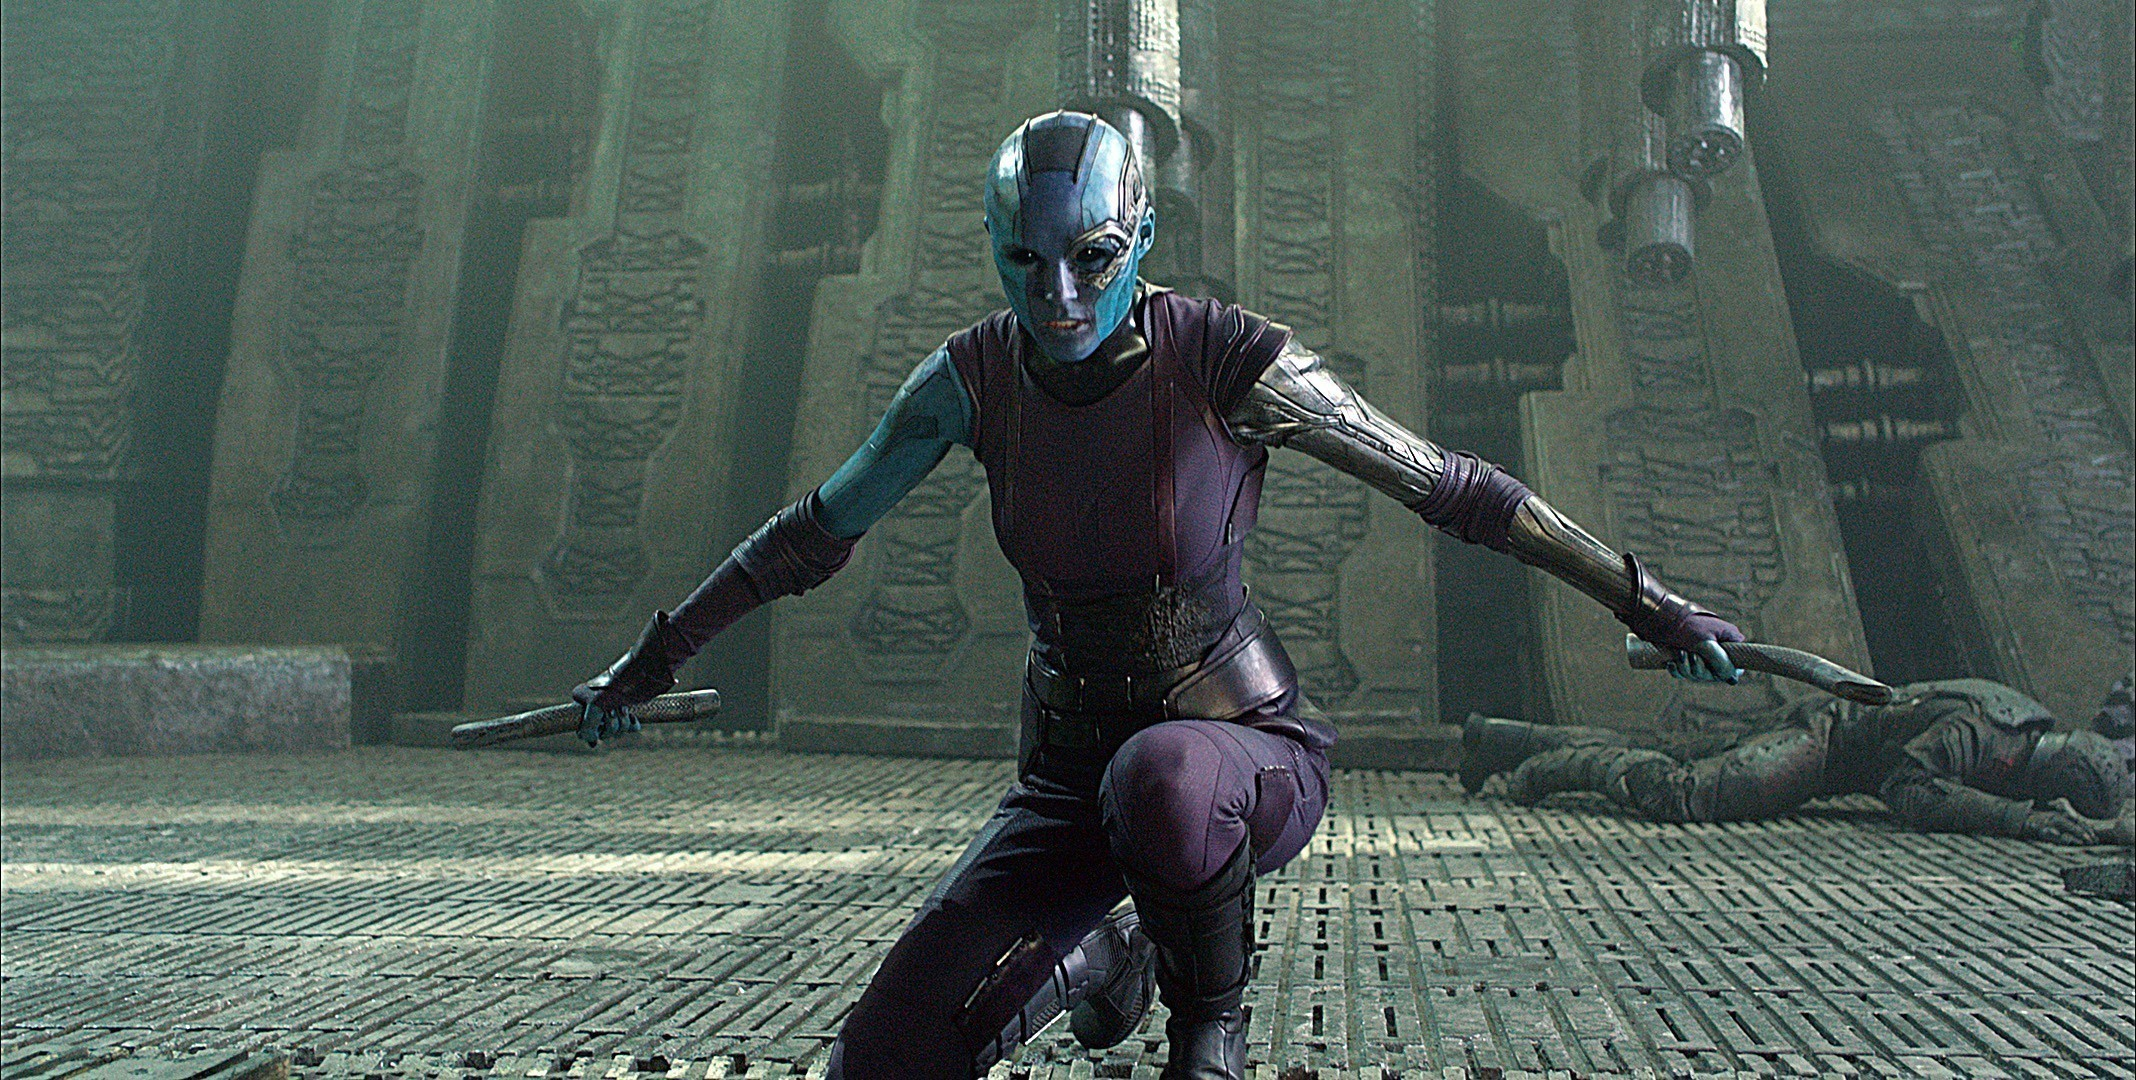 Nebula is one of the daughters of Thanos, and she has the skills to back up that fearsome reputation. But while she served her father faithfully in the original Guardians of the Galaxy, Nebula has since mended fences with her sister, Gamora, and tasked herself with ending the reign of the Mad Titan.